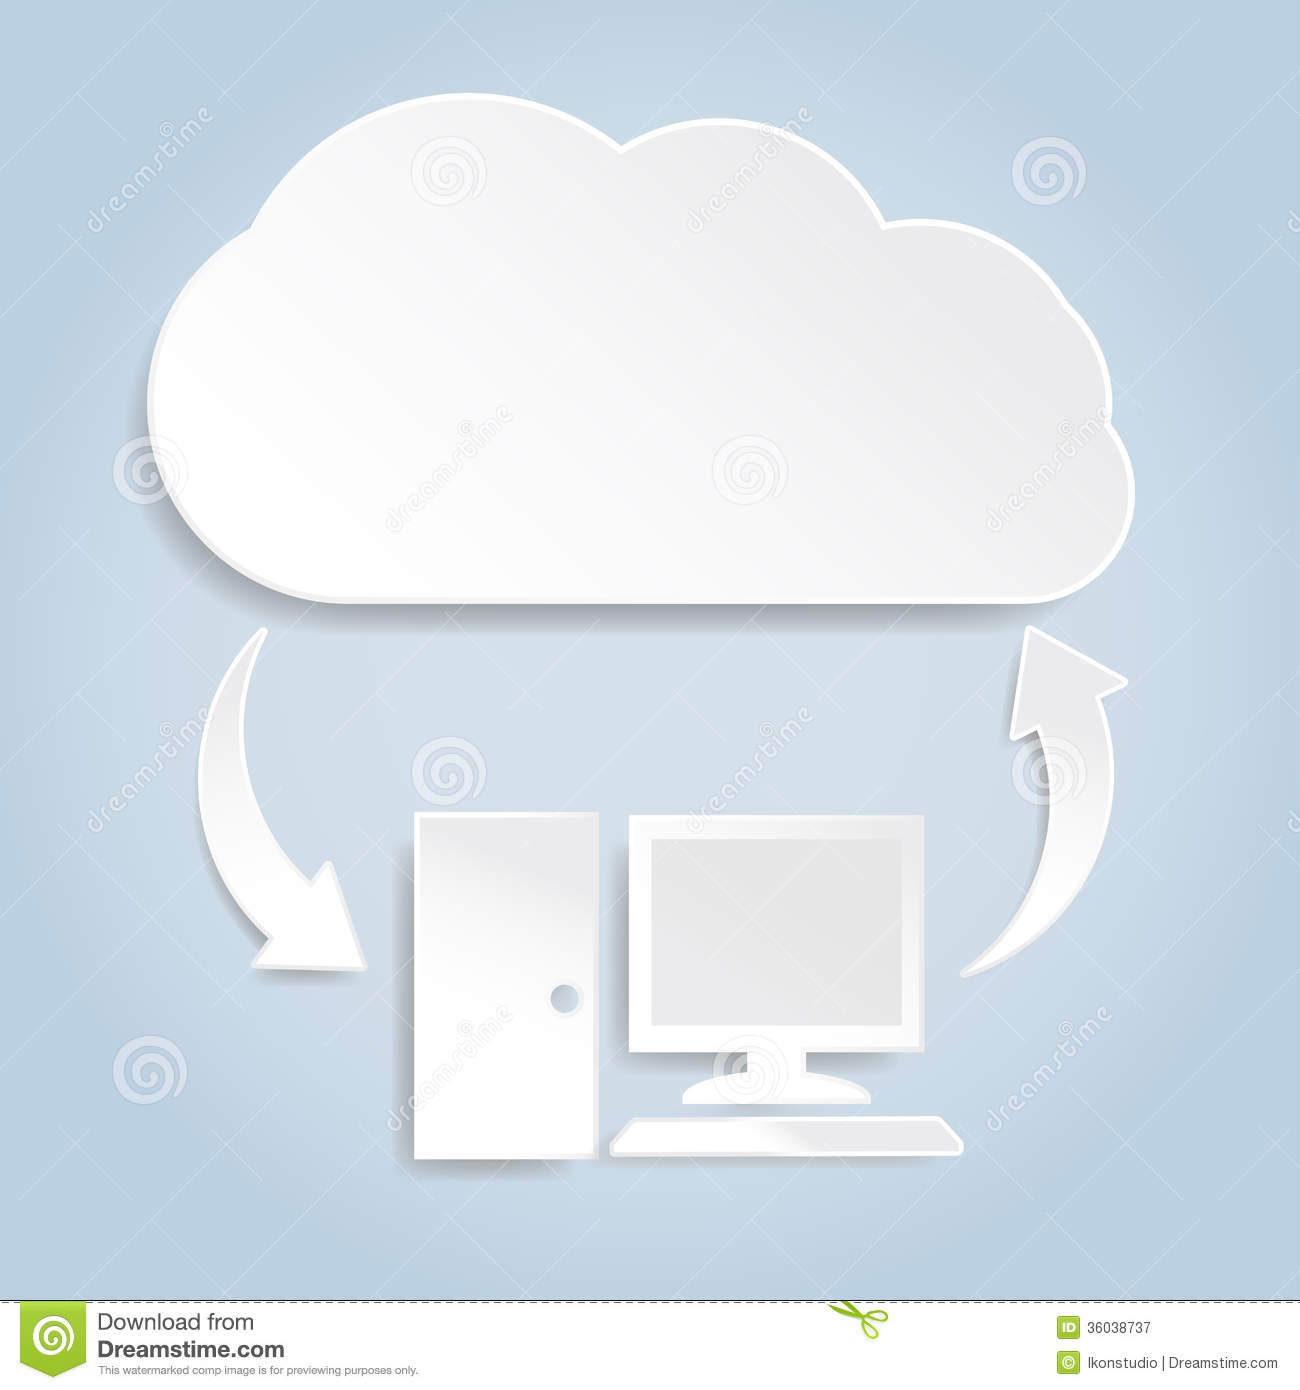 paper cloud computing concept stock image image  paper cloud computing concept